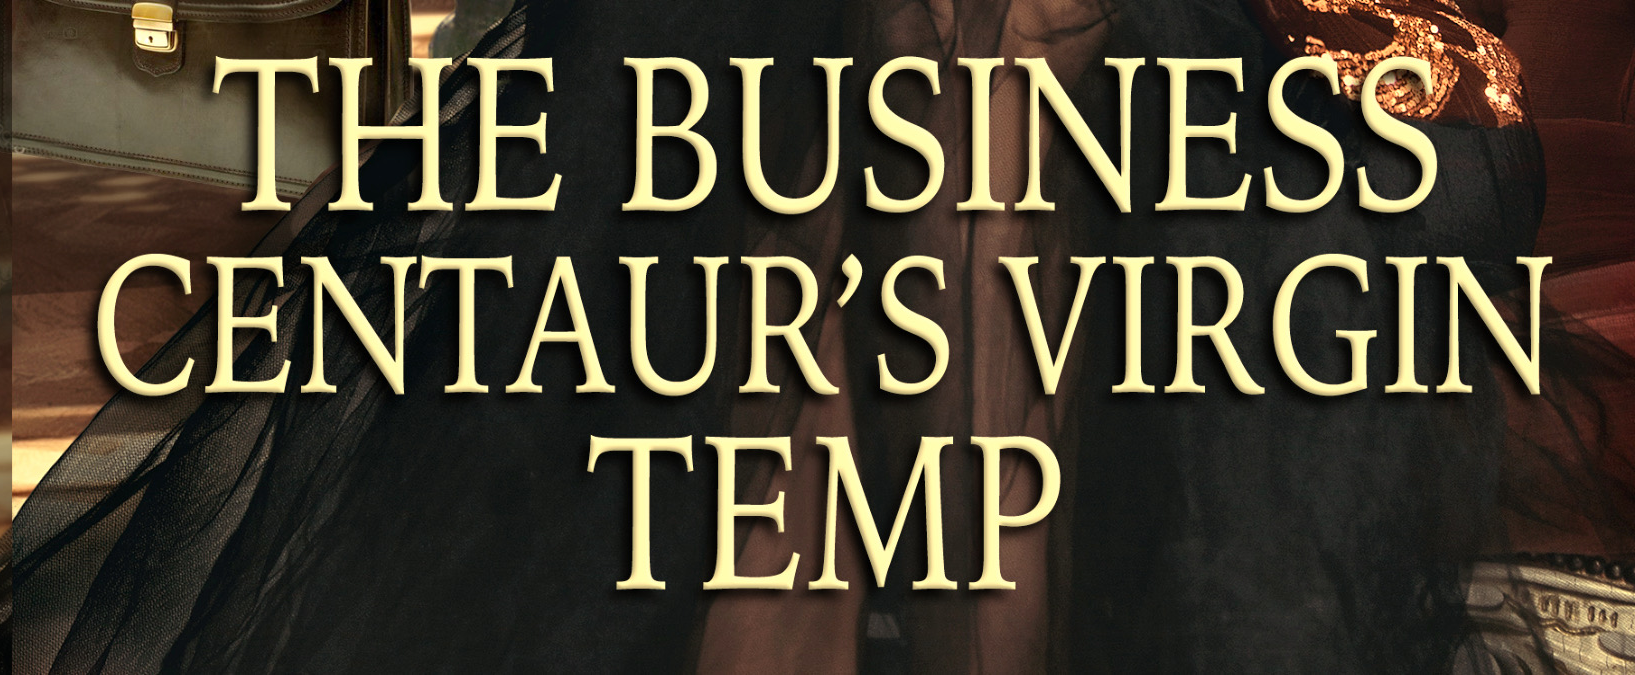 "A slice of a book cover with the title ""The Business Centaur's Virgin Temp"""